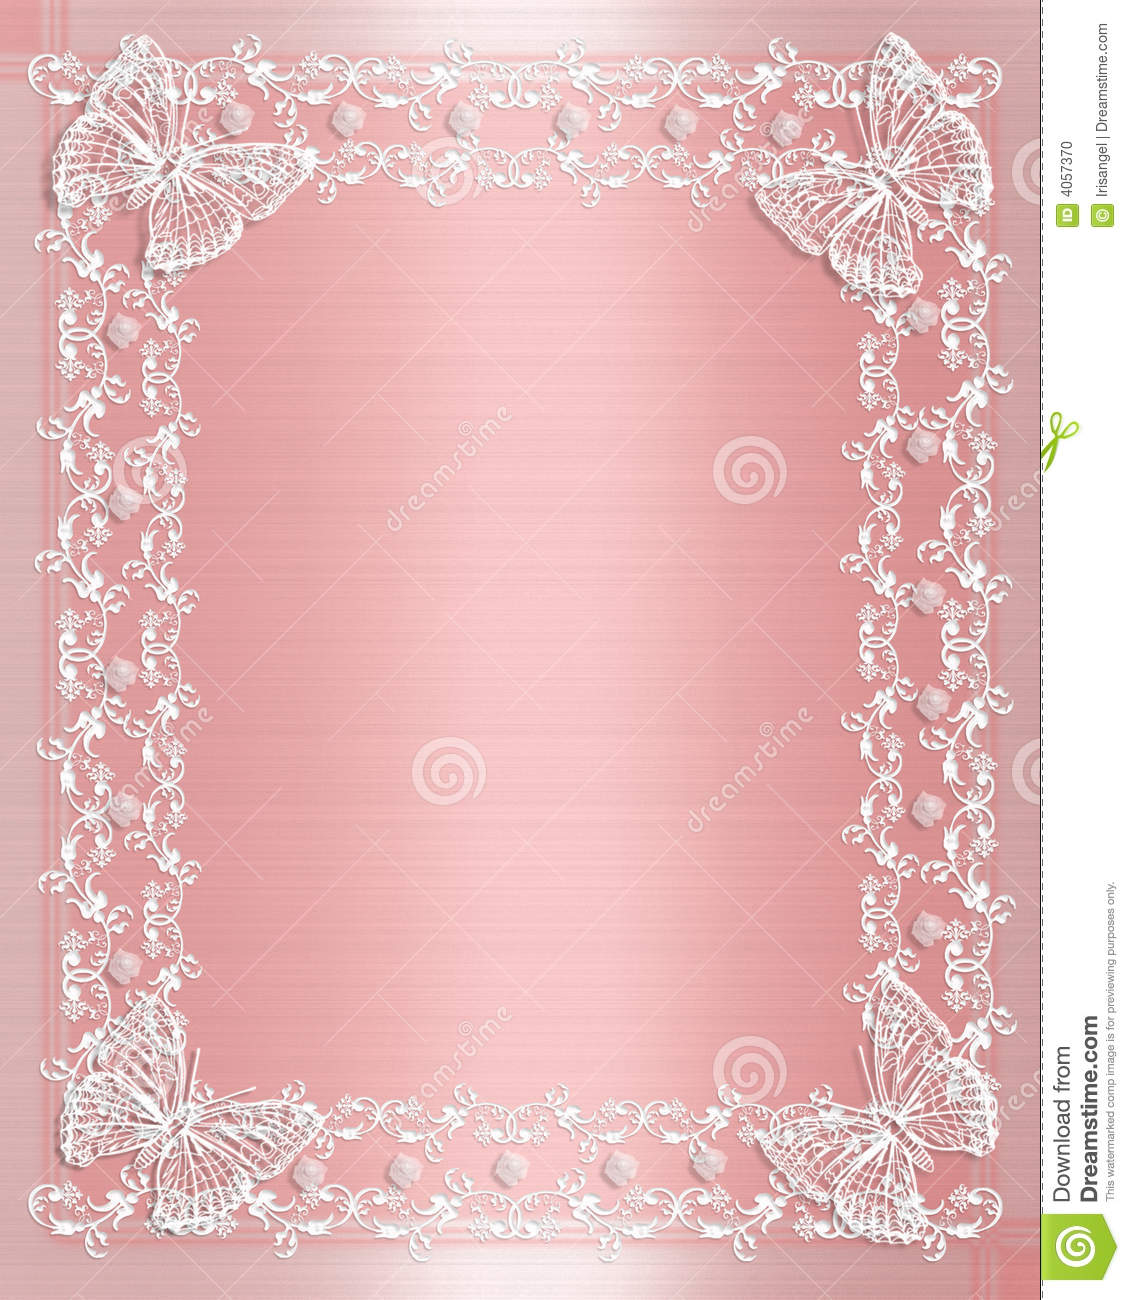 Wedding Invitation Valentine Birthday Or Anniversary Background Of Pink Satin And Illustrated Lace Butterflies With Copy Space: Lace Wedding Invite Backgrounds At Reisefeber.org